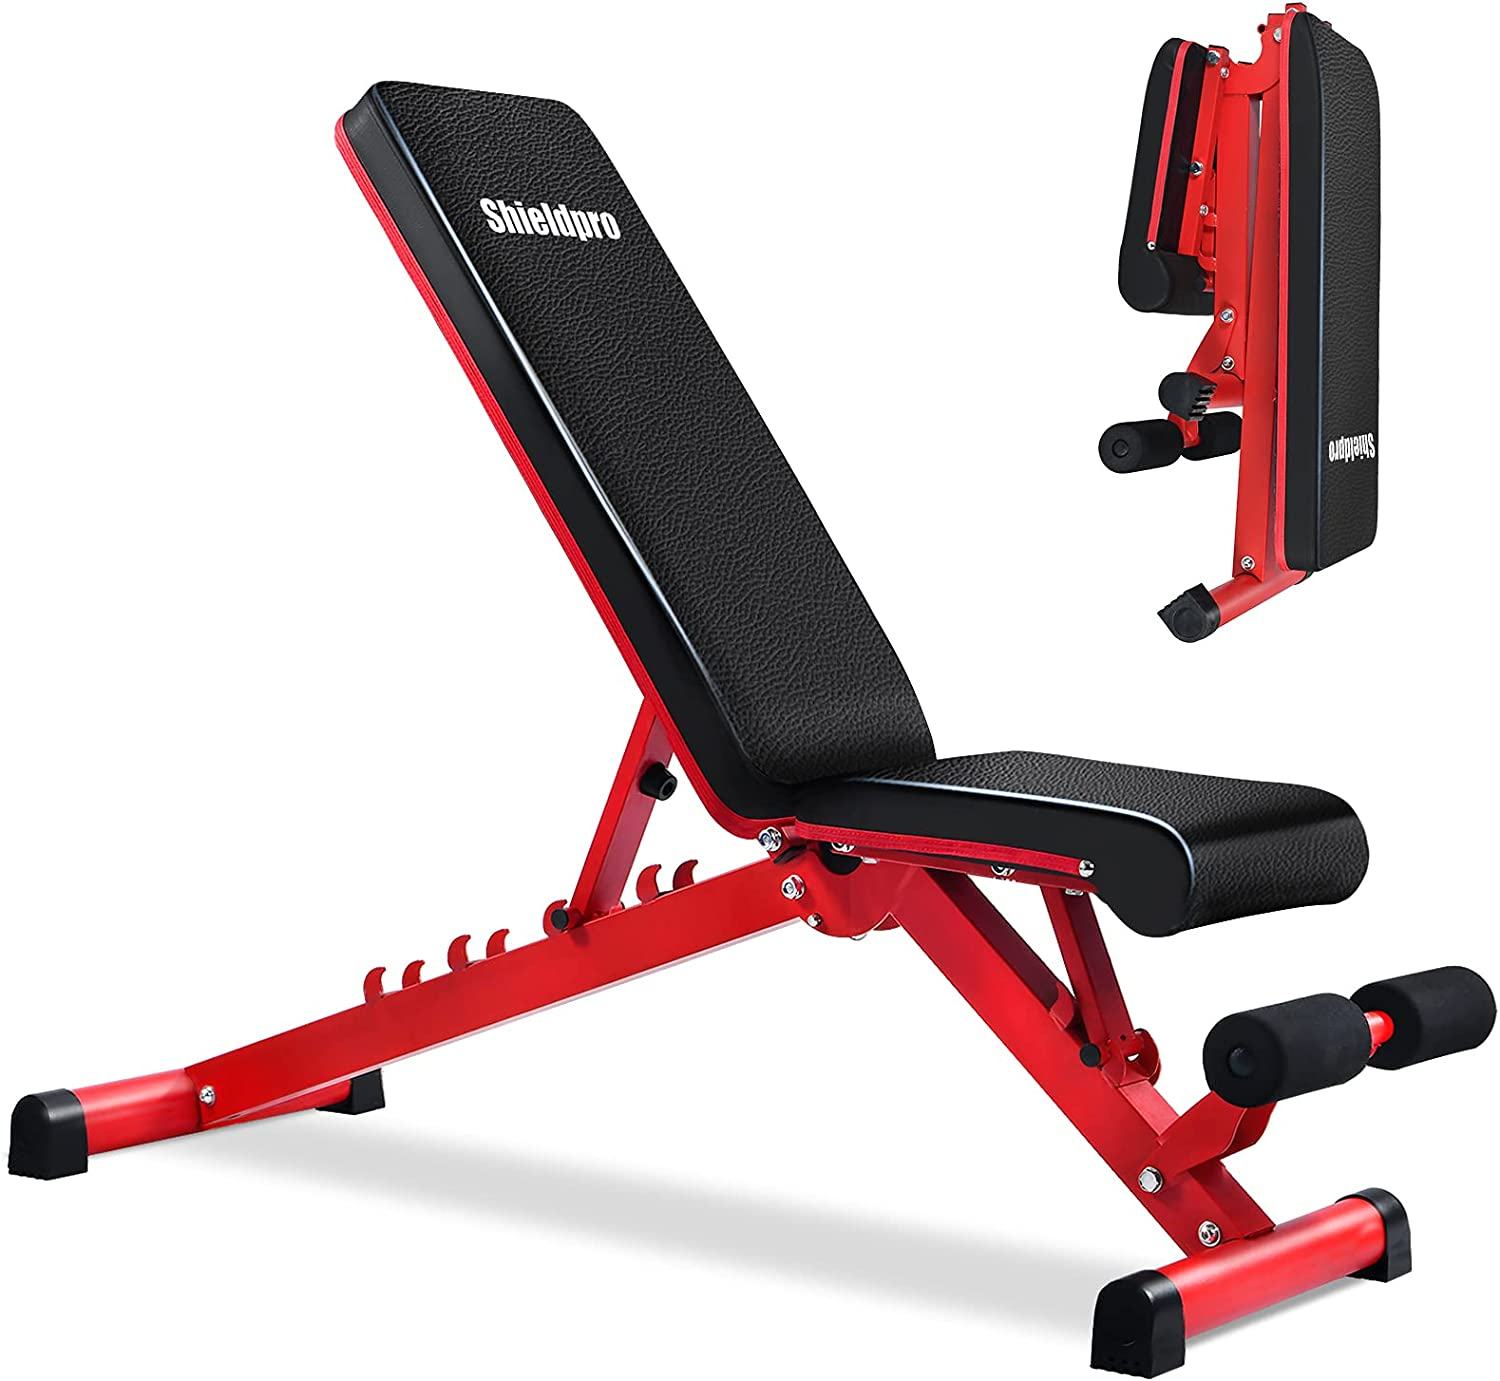 Shieldpro Adjustable Fast Folding Workout Bench $69.99 Coupon